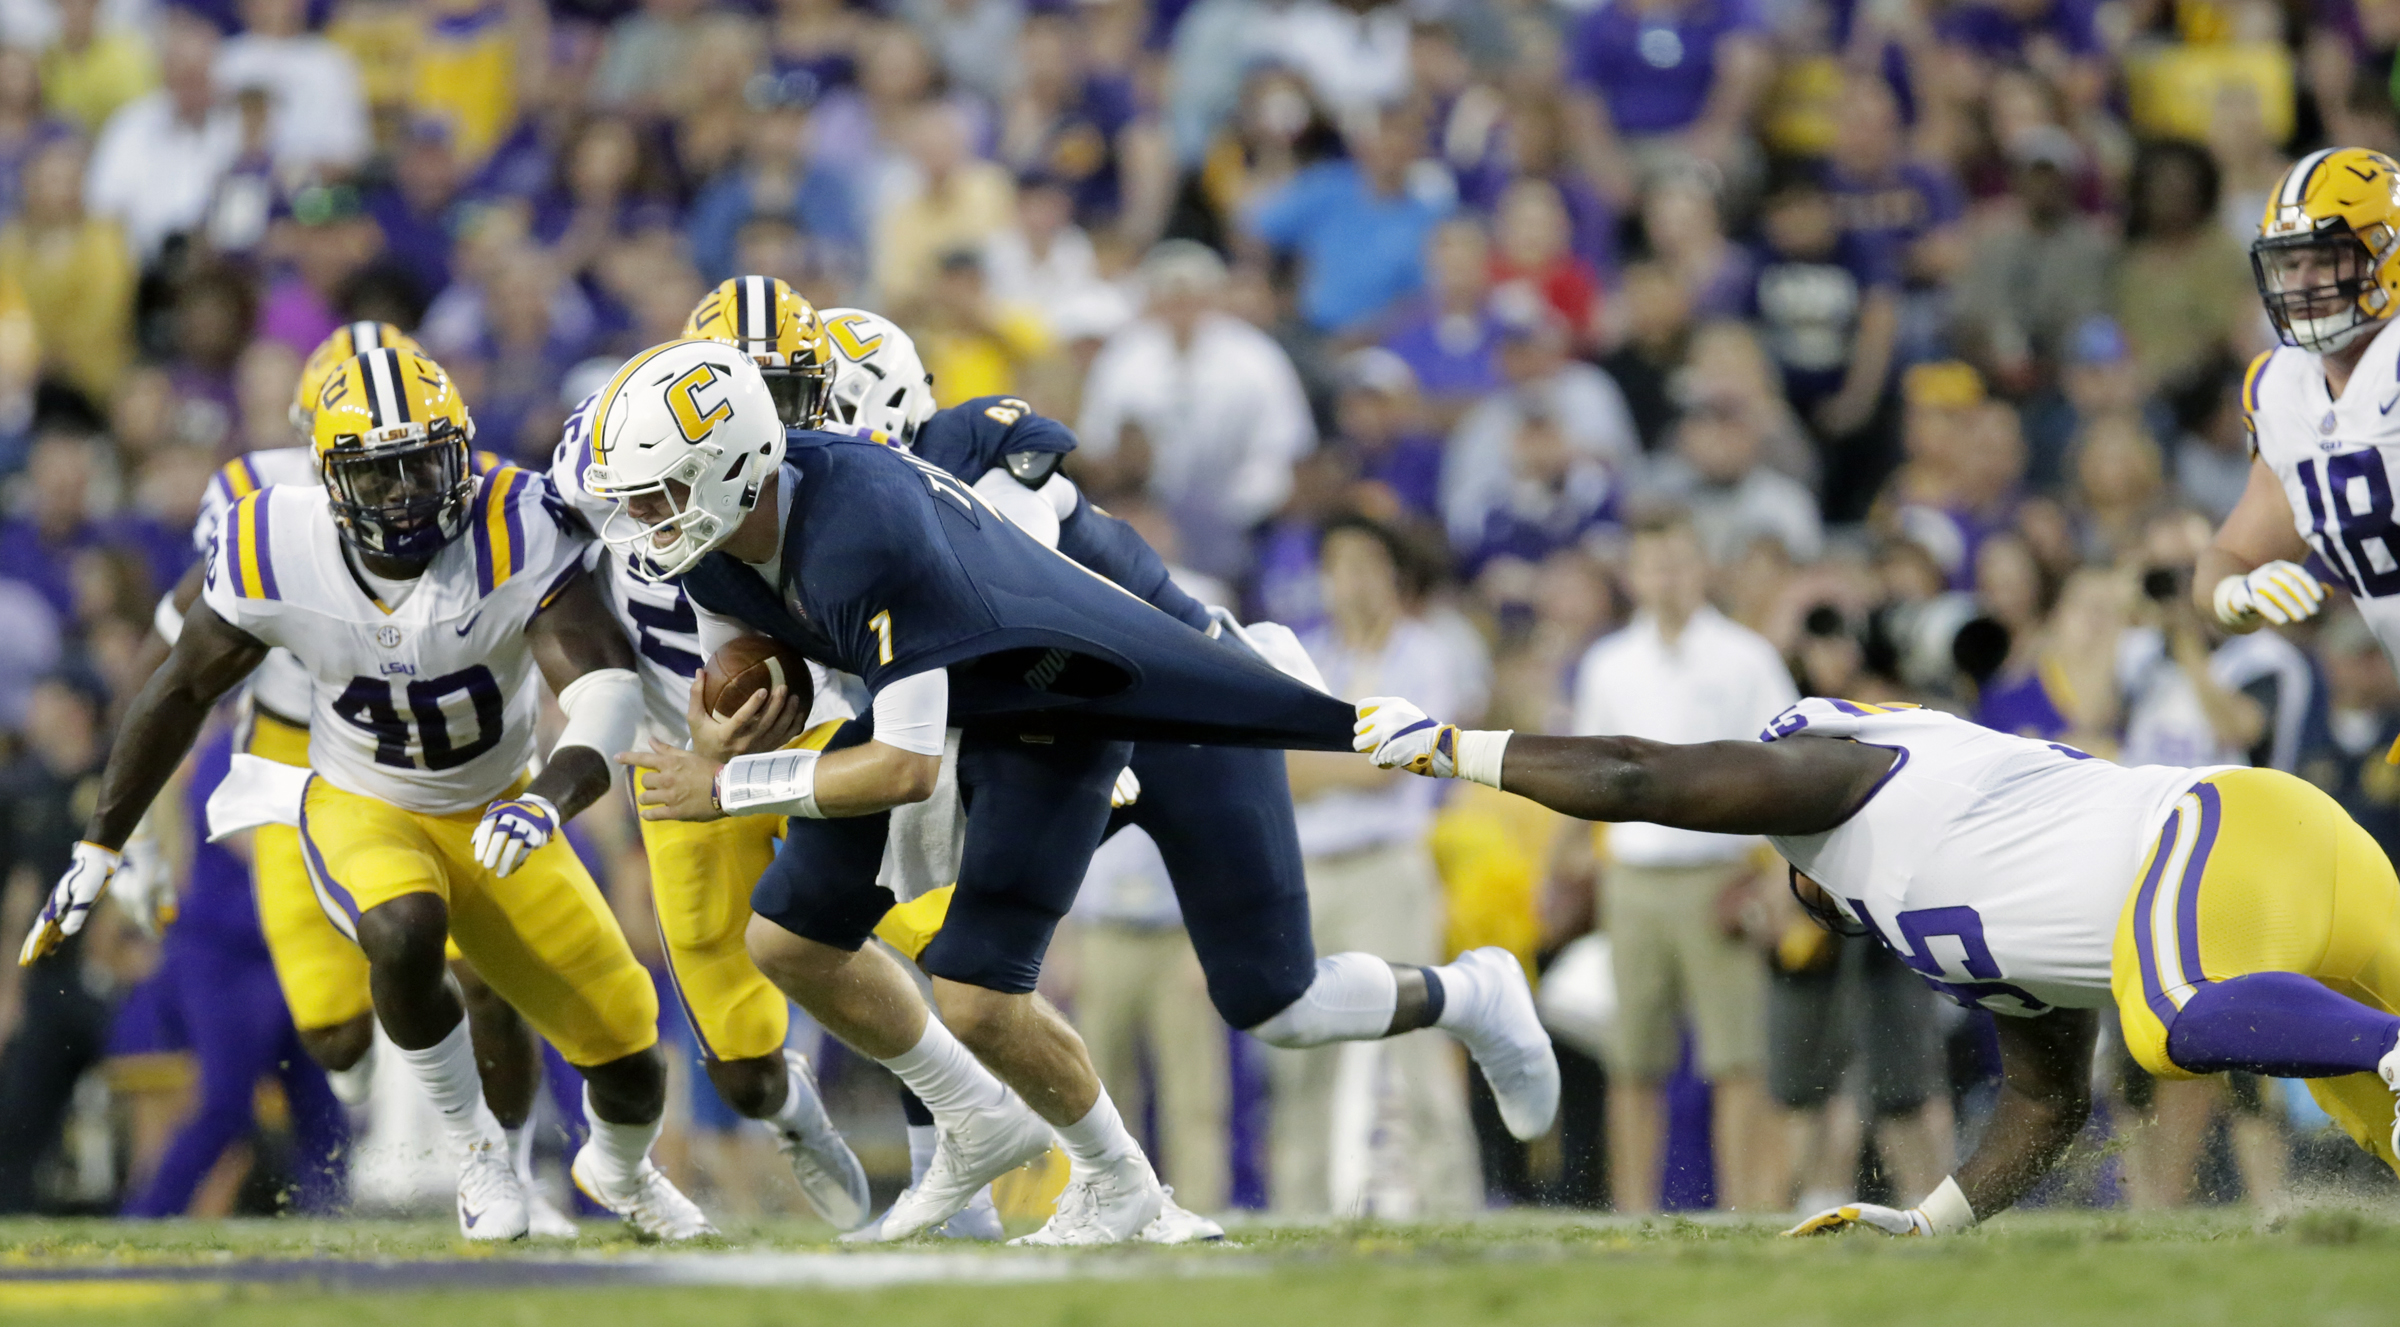 LSU Tigers Ed Alexander (95) pulls on the jersey of Chattanooga Mocs quarterback Nick Tiano (7) during first half action in Baton Rouge on Saturday, September 9, 2017. (Photo by Brett Duke, Nola.com | The Times-Picayune)